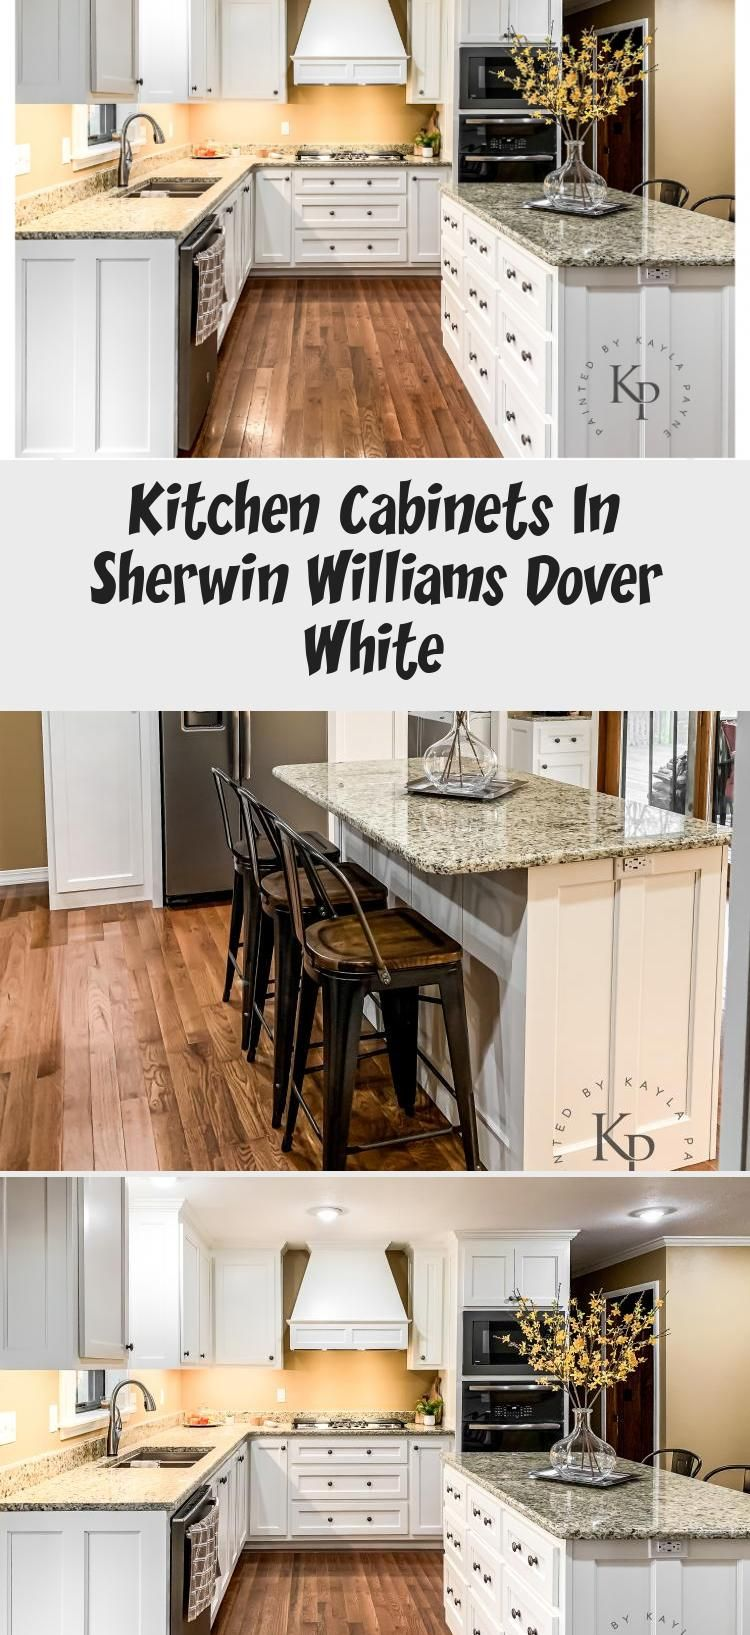 Kitchen Cabinets In Sherwin Williams Dover White Kitchen Decor In 2020 Sherwin Williams Dover White White Kitchen Decor Kitchen Colors